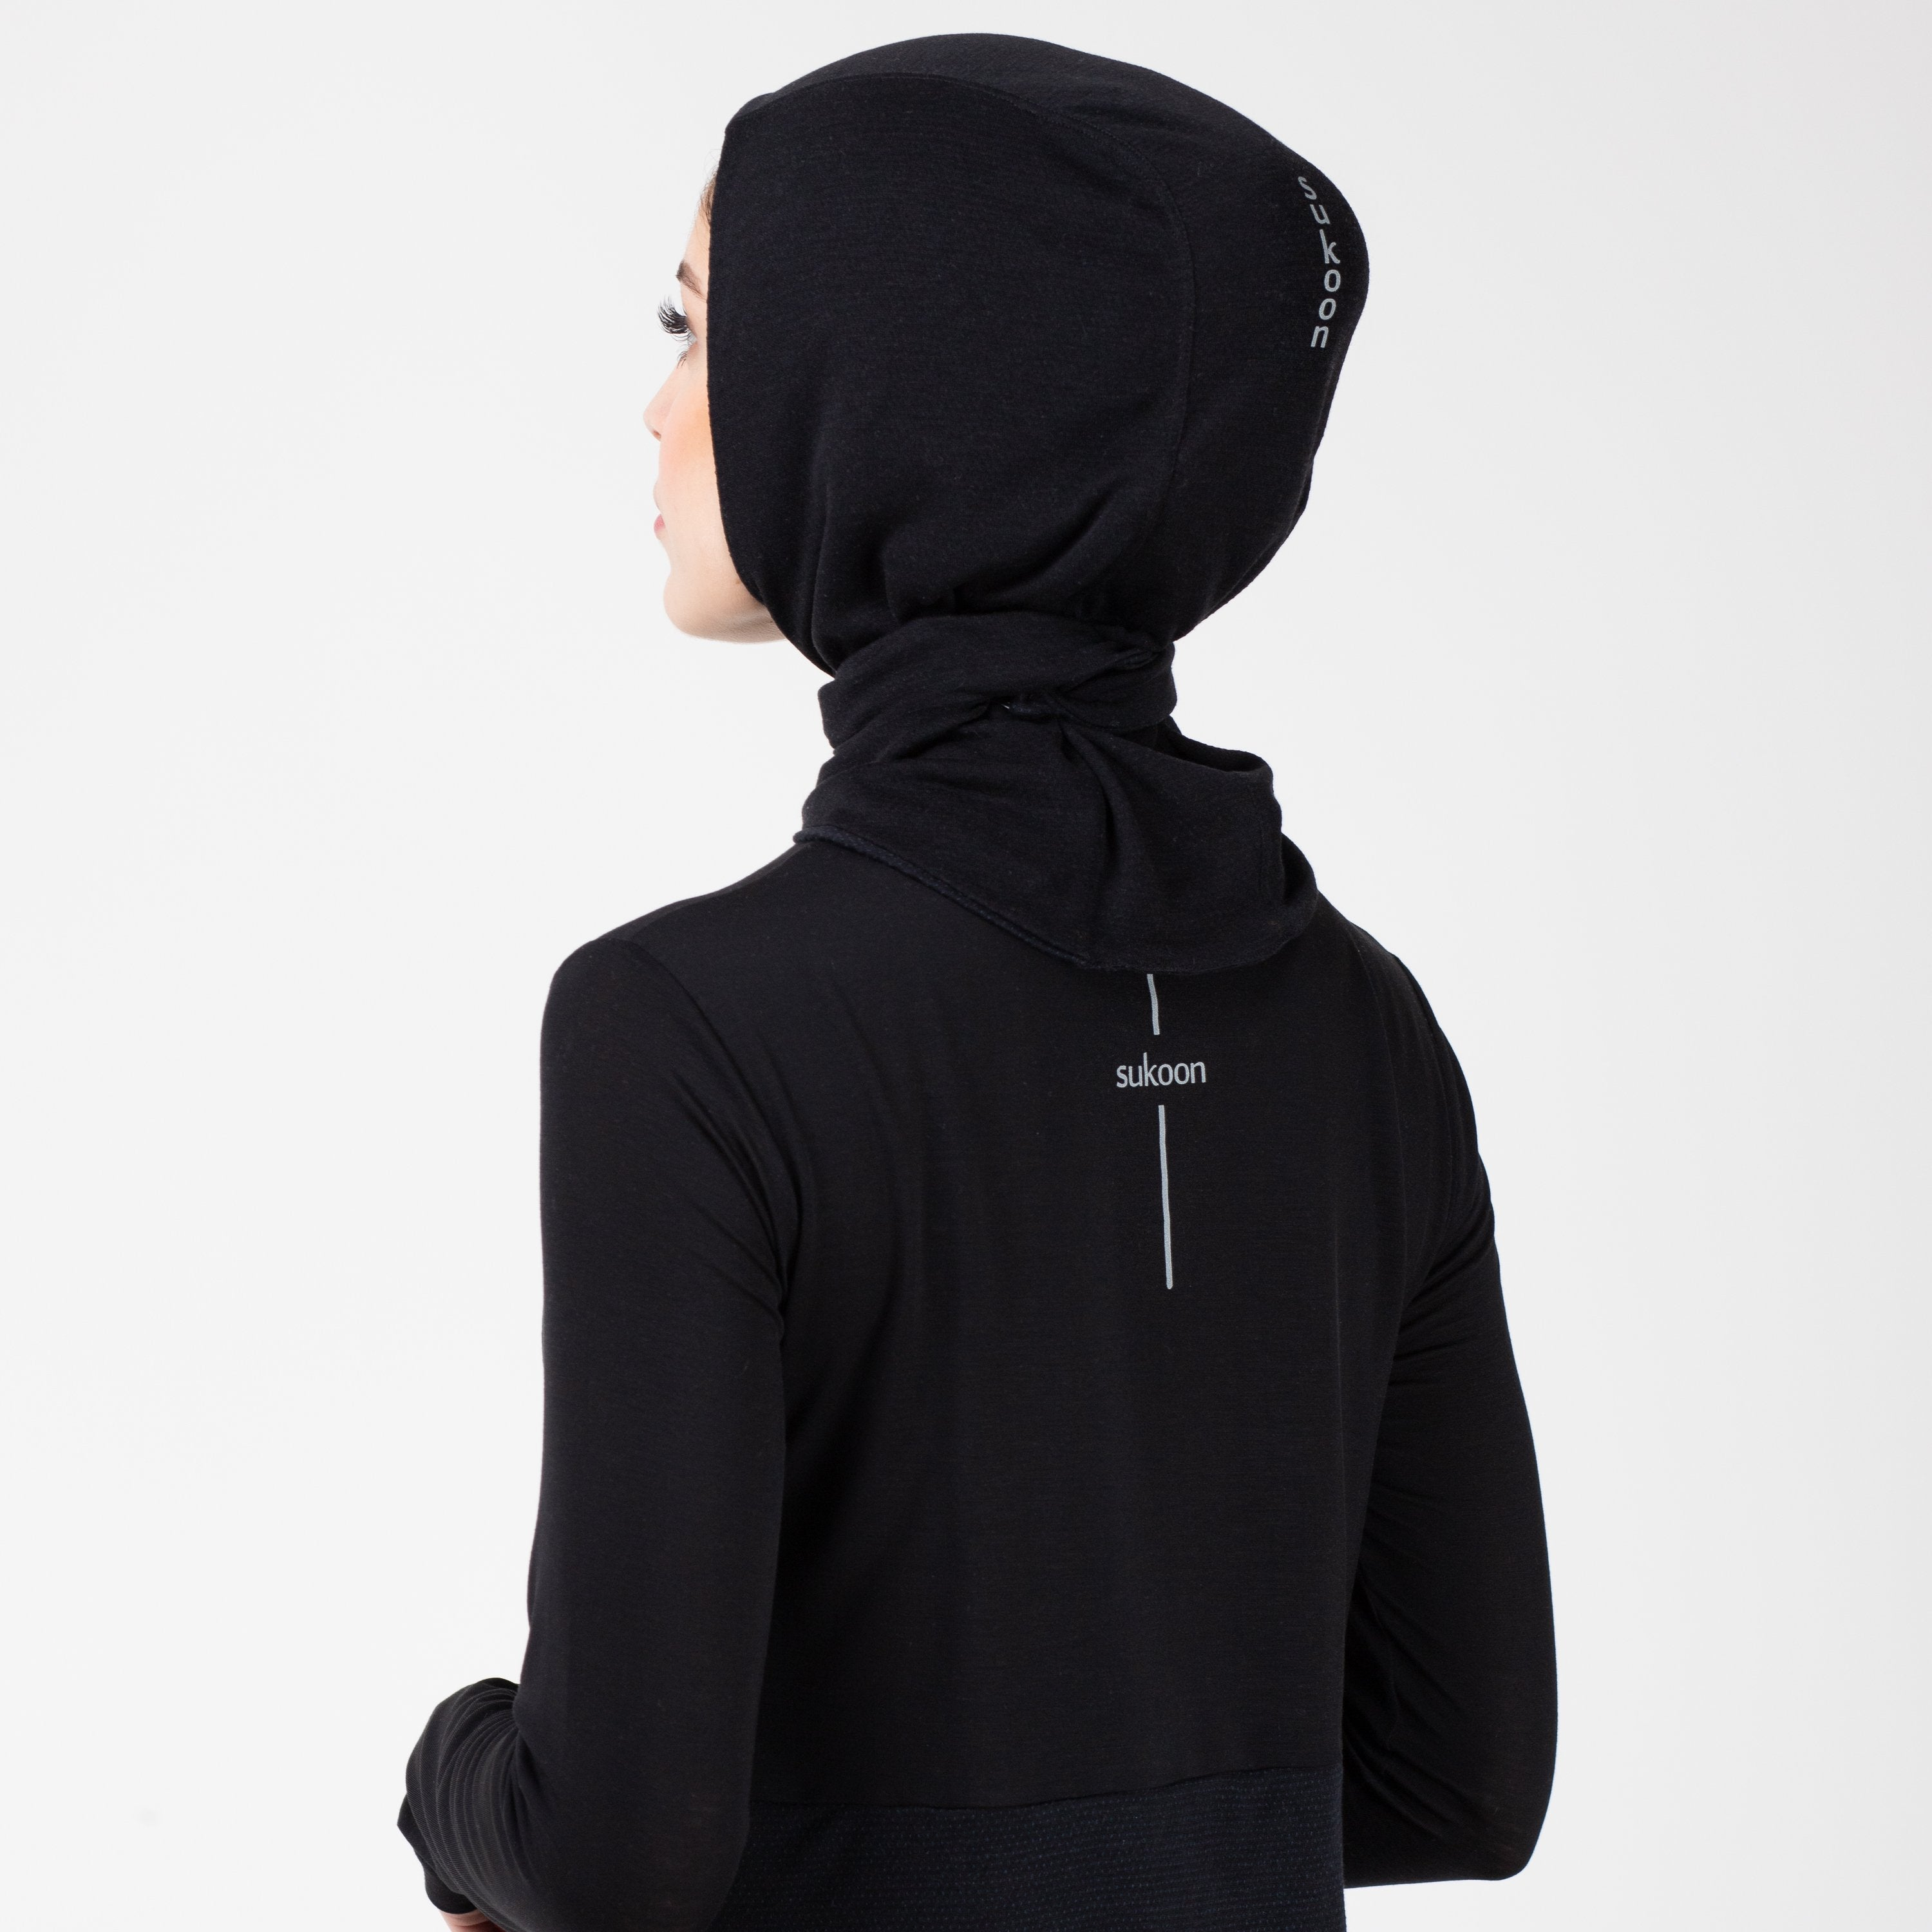 Back detail of a woman in a black shirt with a matching black HAWA hijab.